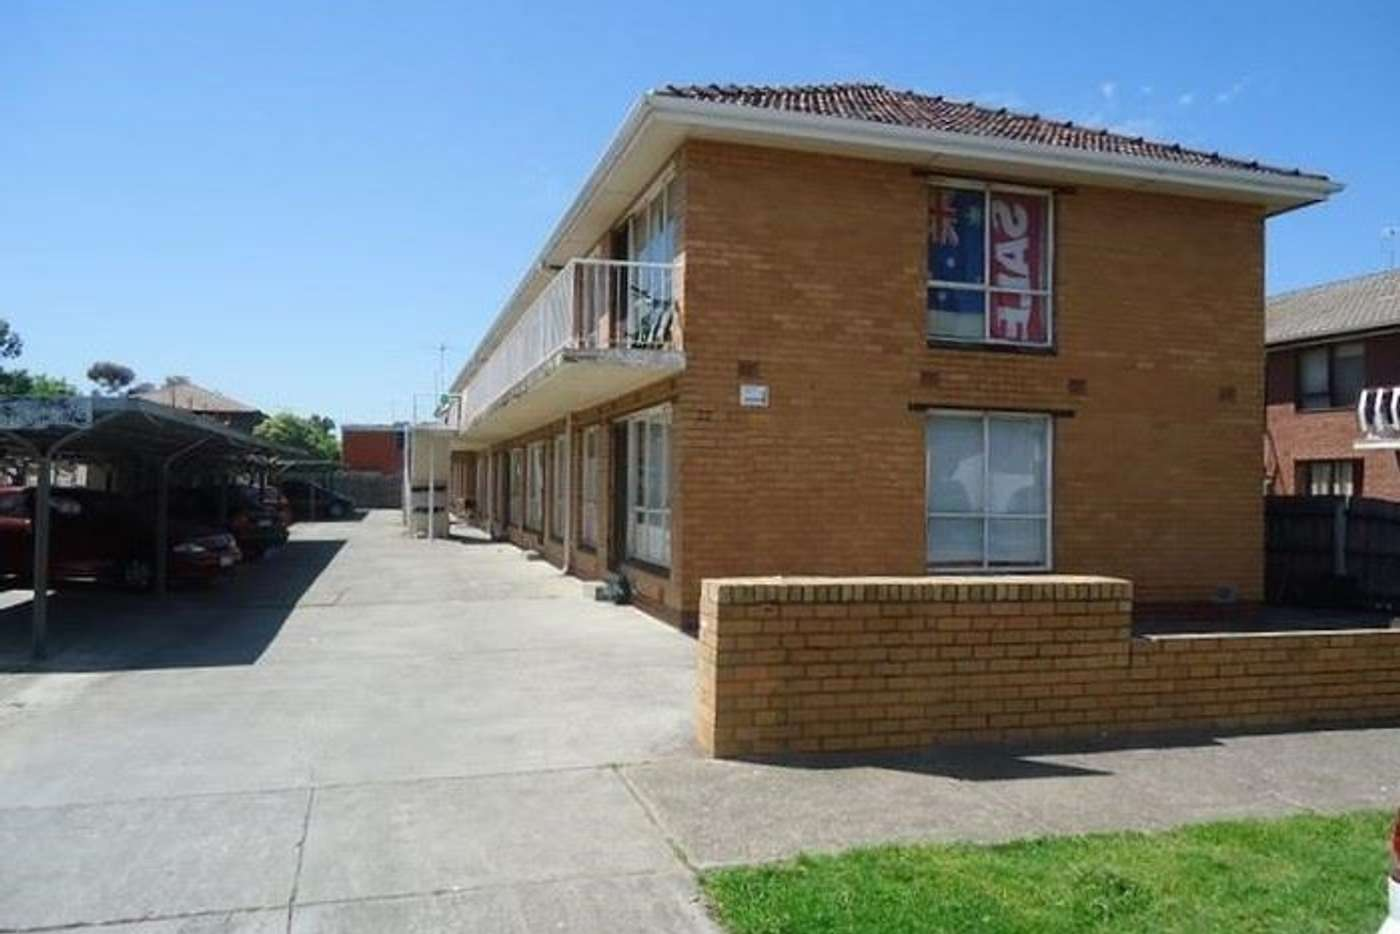 Main view of Homely apartment listing, 1/22 Empire Street, Footscray VIC 3011